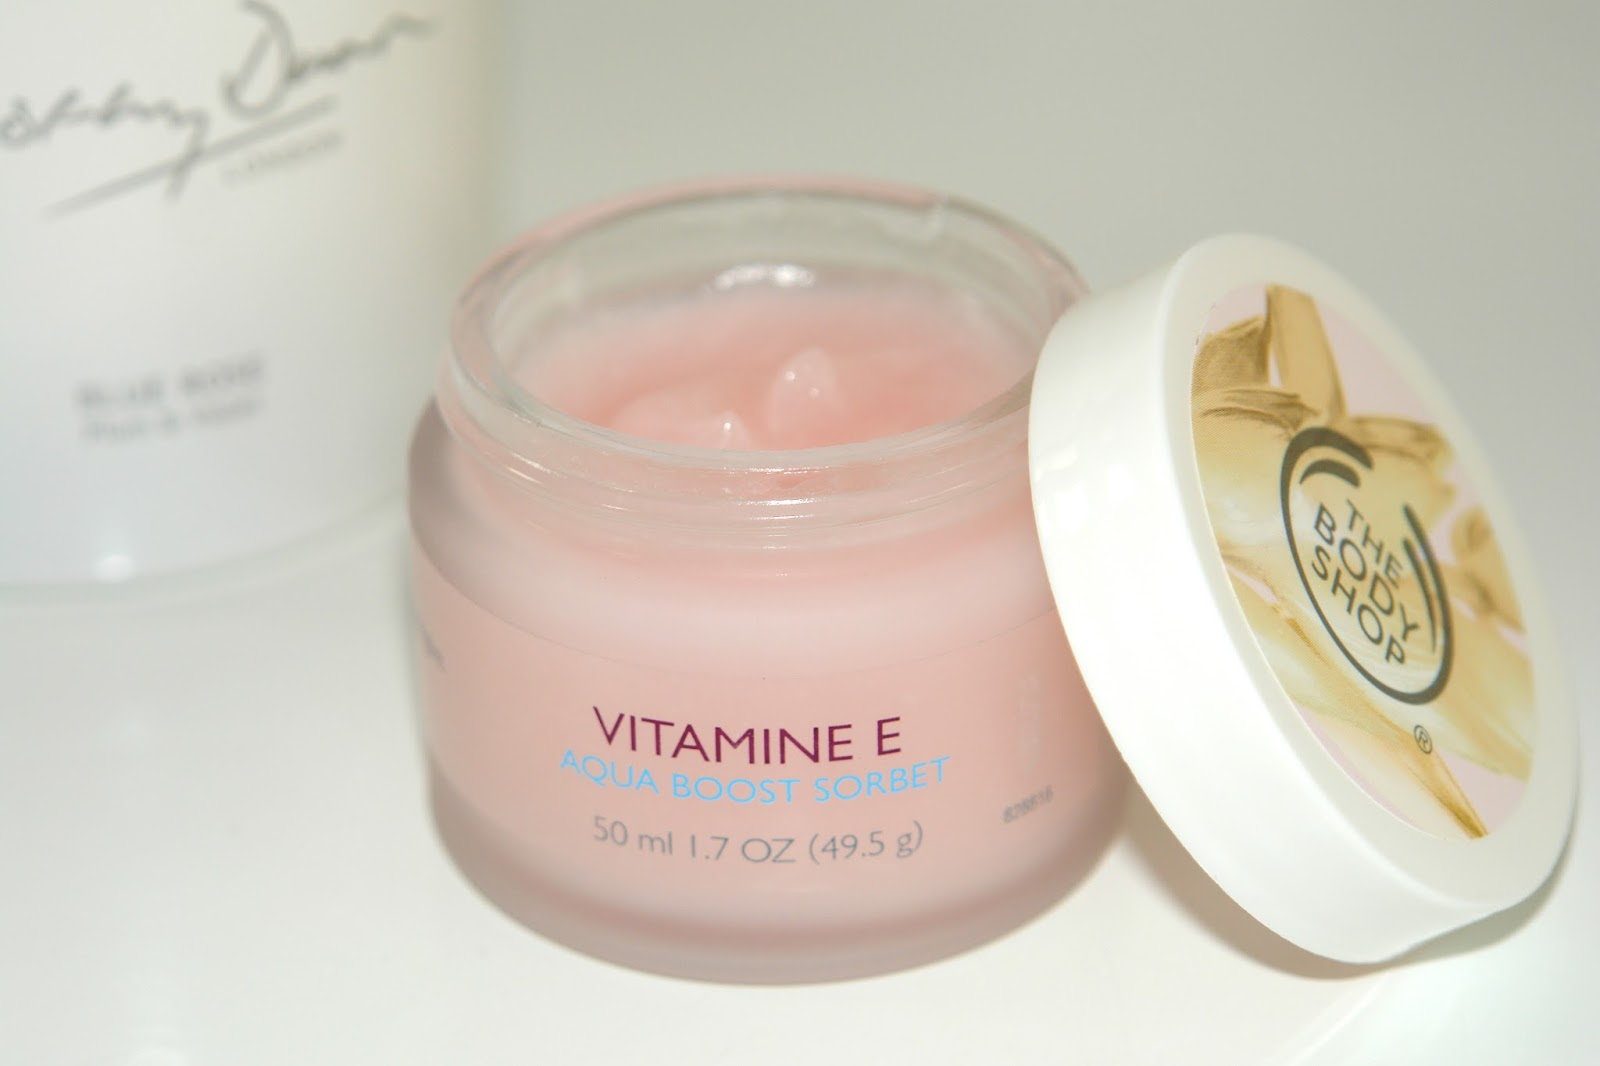 The Body Shop Vitamin E Aqua Boost Sorbet, The Body Shop, beauty, skincare, review, UK blogger, beauty blog, Top UK blogger, make up, skincare, face cream, cream, day cream, night cream, Vitamine E, range,